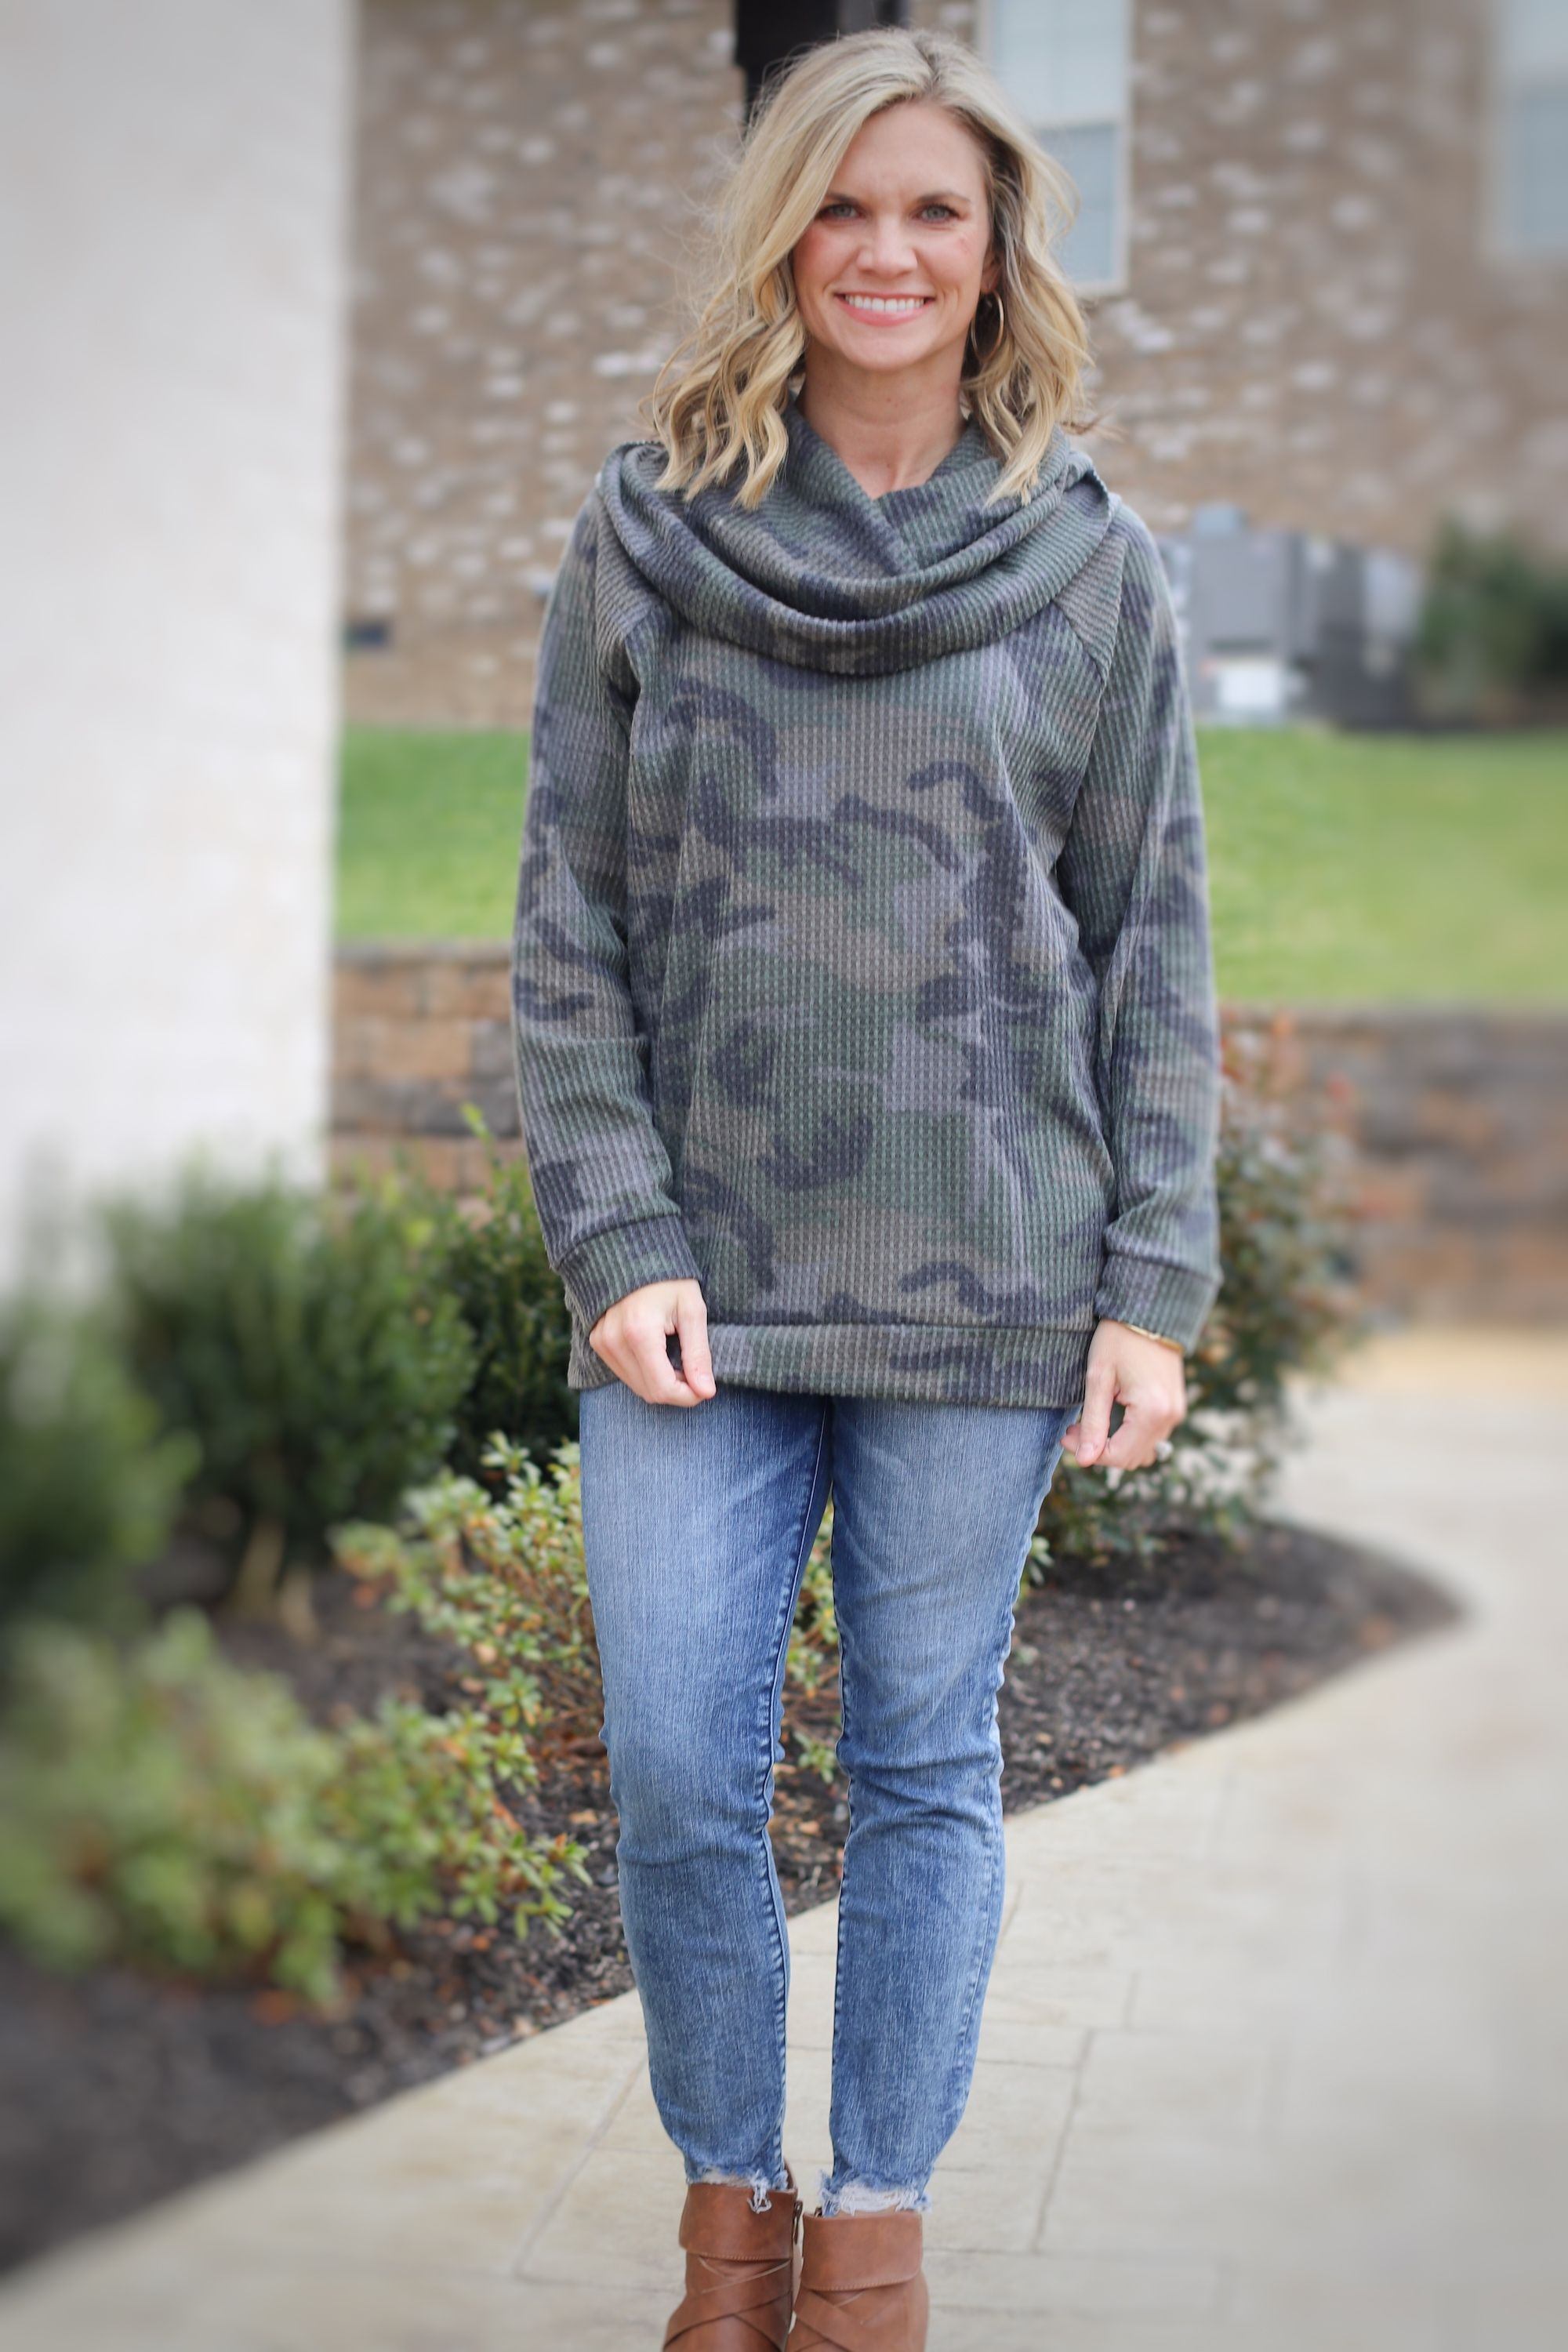 dd99163403ff3 Camo tunics for the win! we love this look and you can pair it with ...